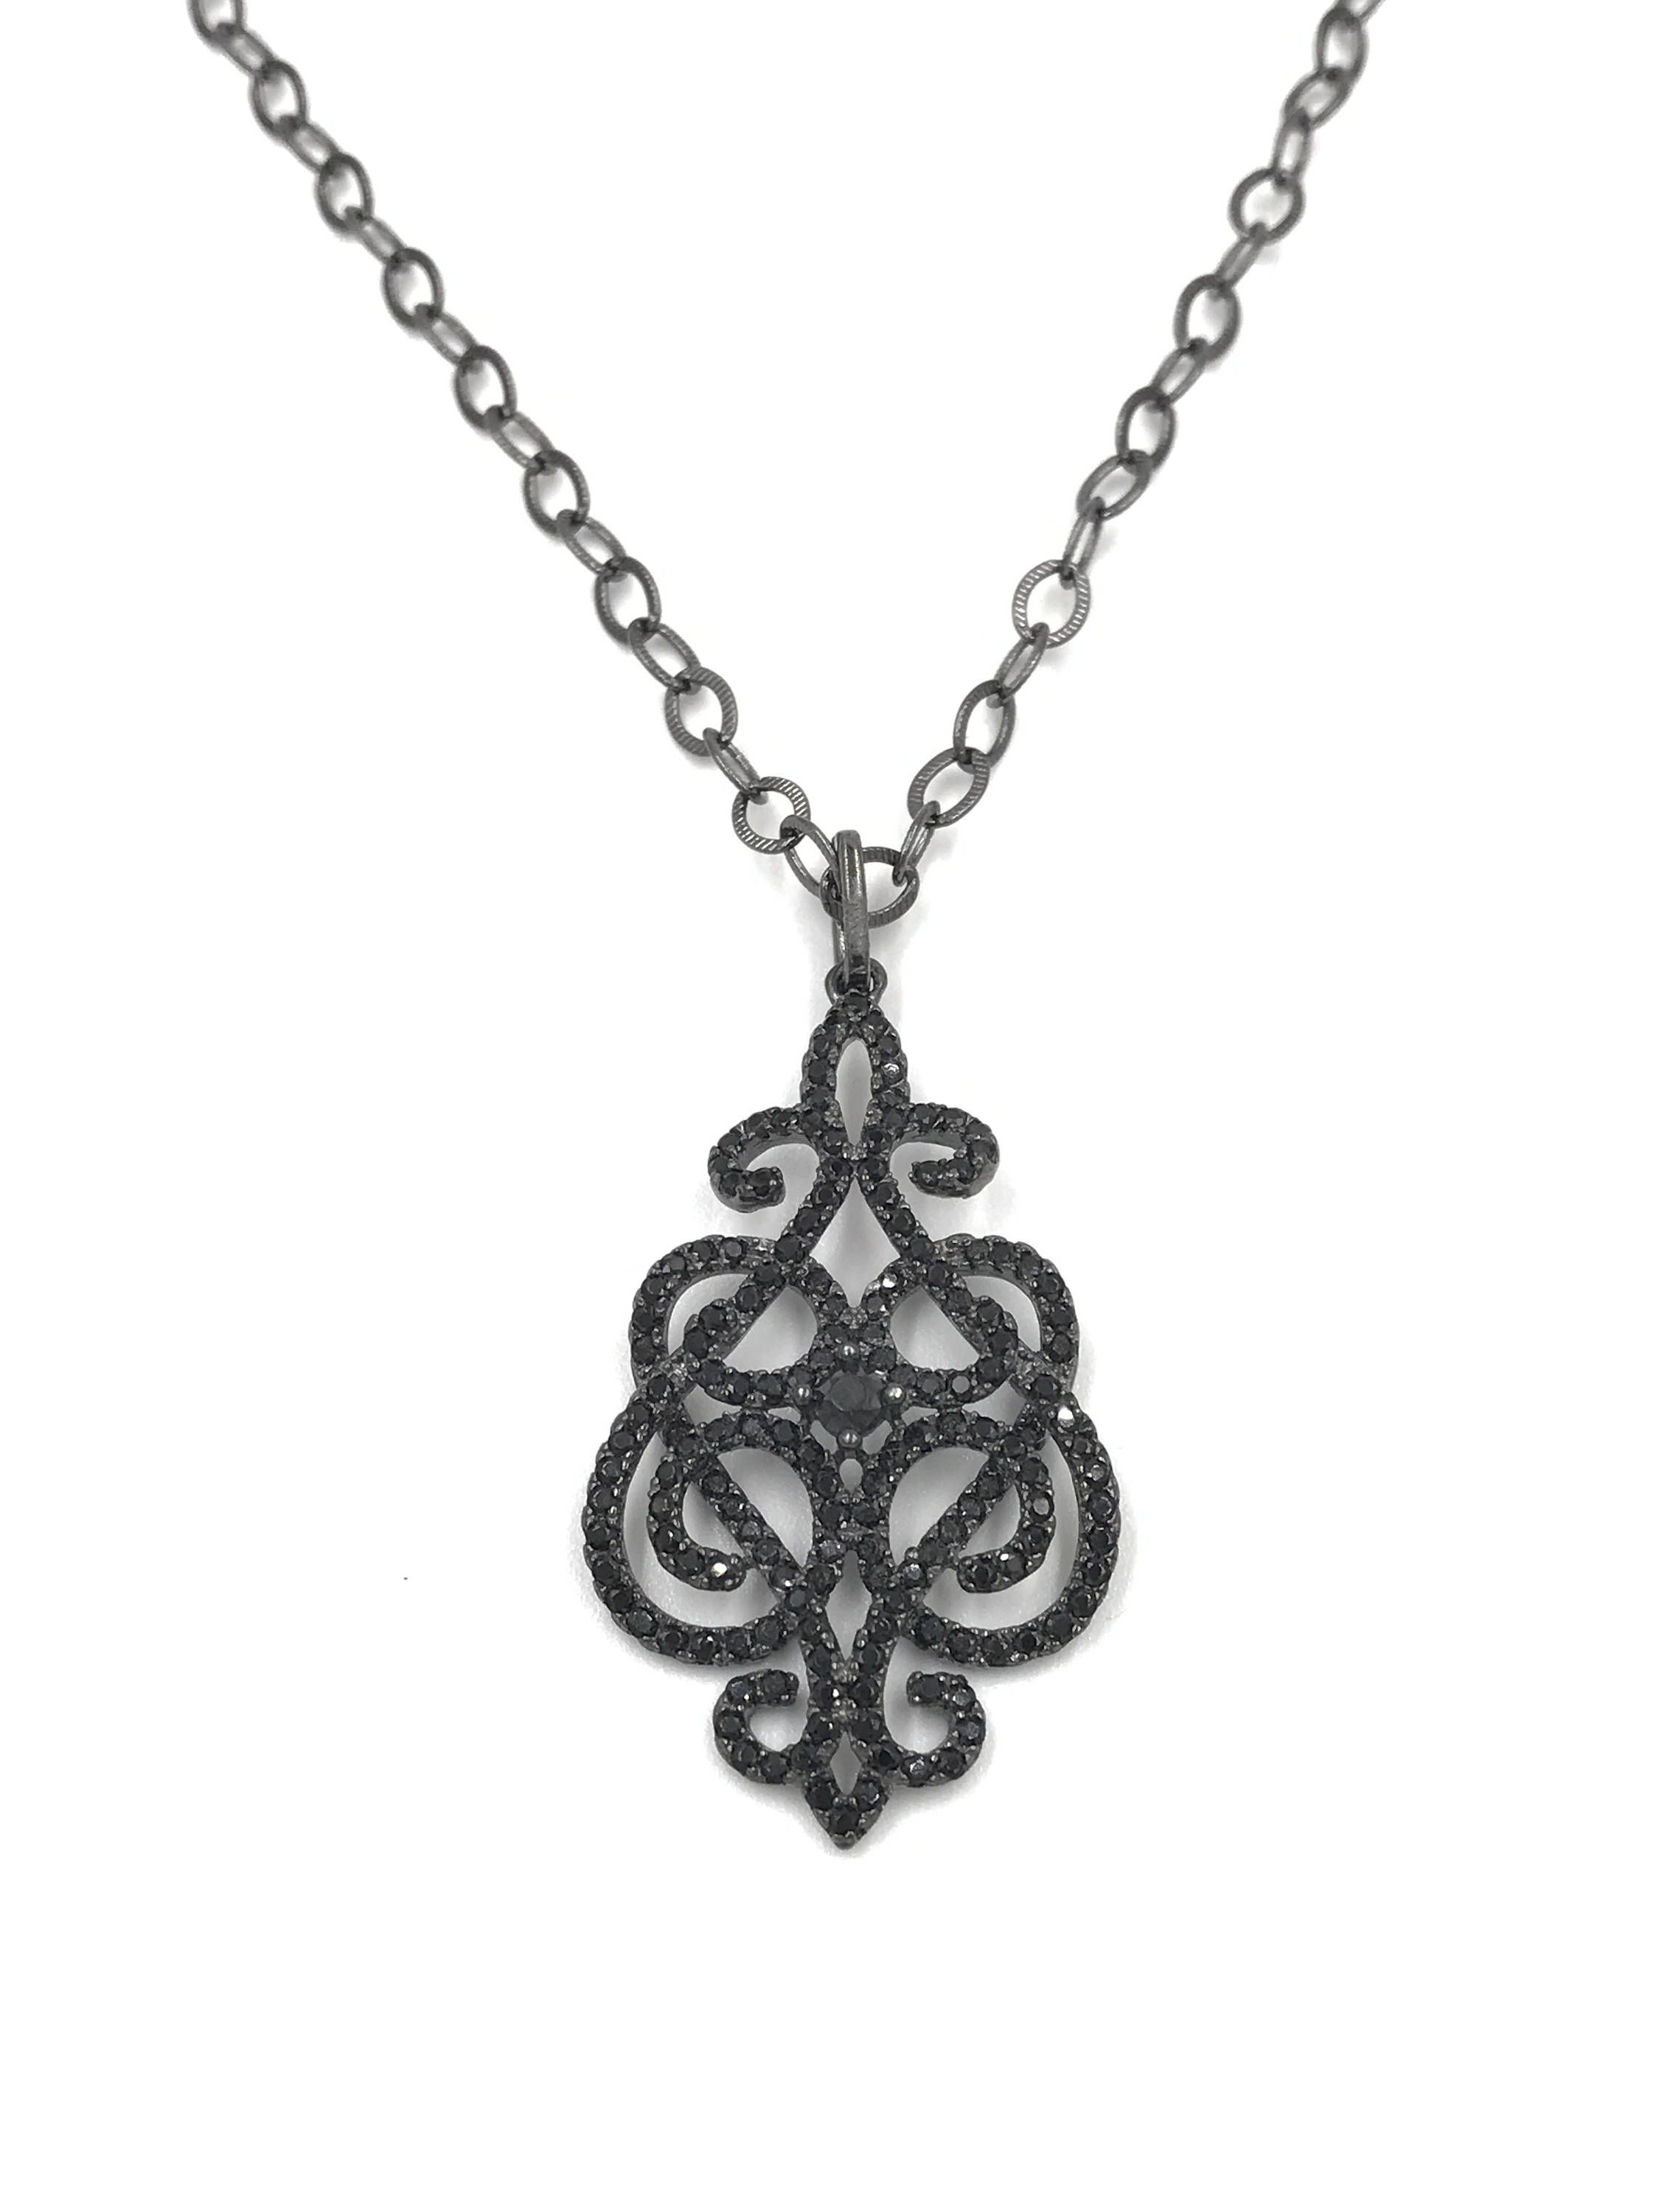 com products aynur necklace abbot single spinel aynurabbott